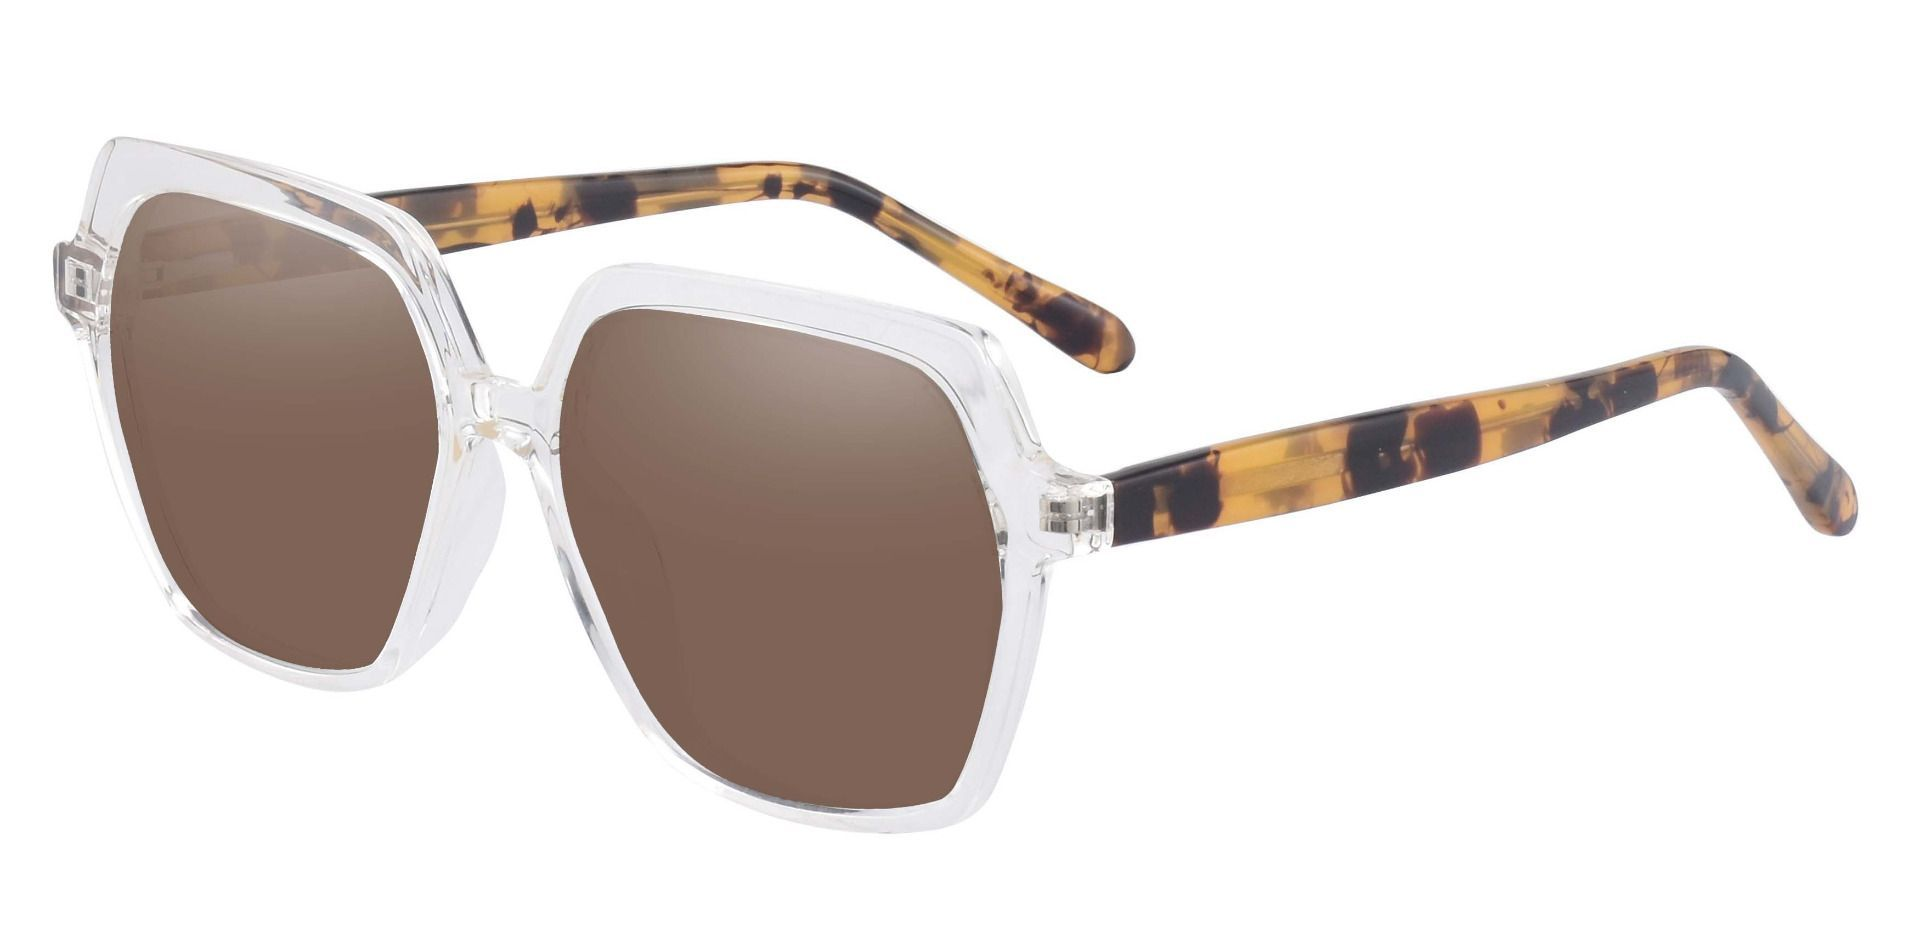 Regent Geometric Reading Sunglasses - Clear Frame With Brown Lenses